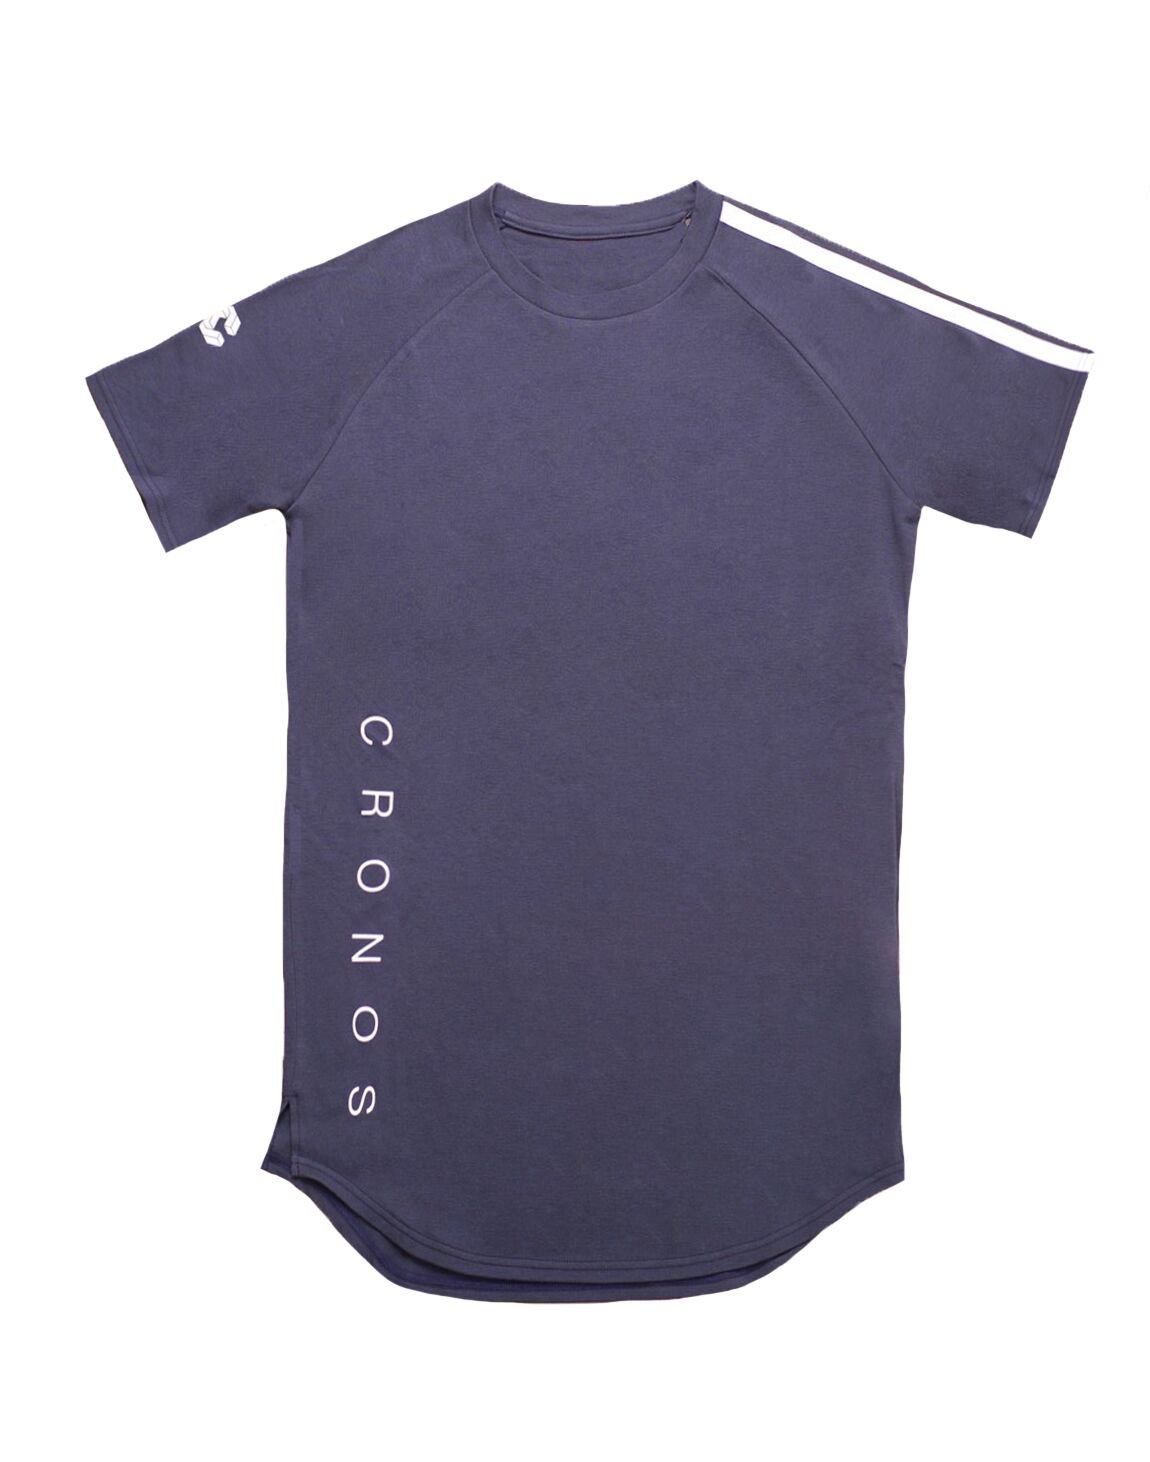 <img class='new_mark_img1' src='https://img.shop-pro.jp/img/new/icons1.gif' style='border:none;display:inline;margin:0px;padding:0px;width:auto;' />CRONOS SHOULDER TWO LINE T-SHIRTS【NAVY】